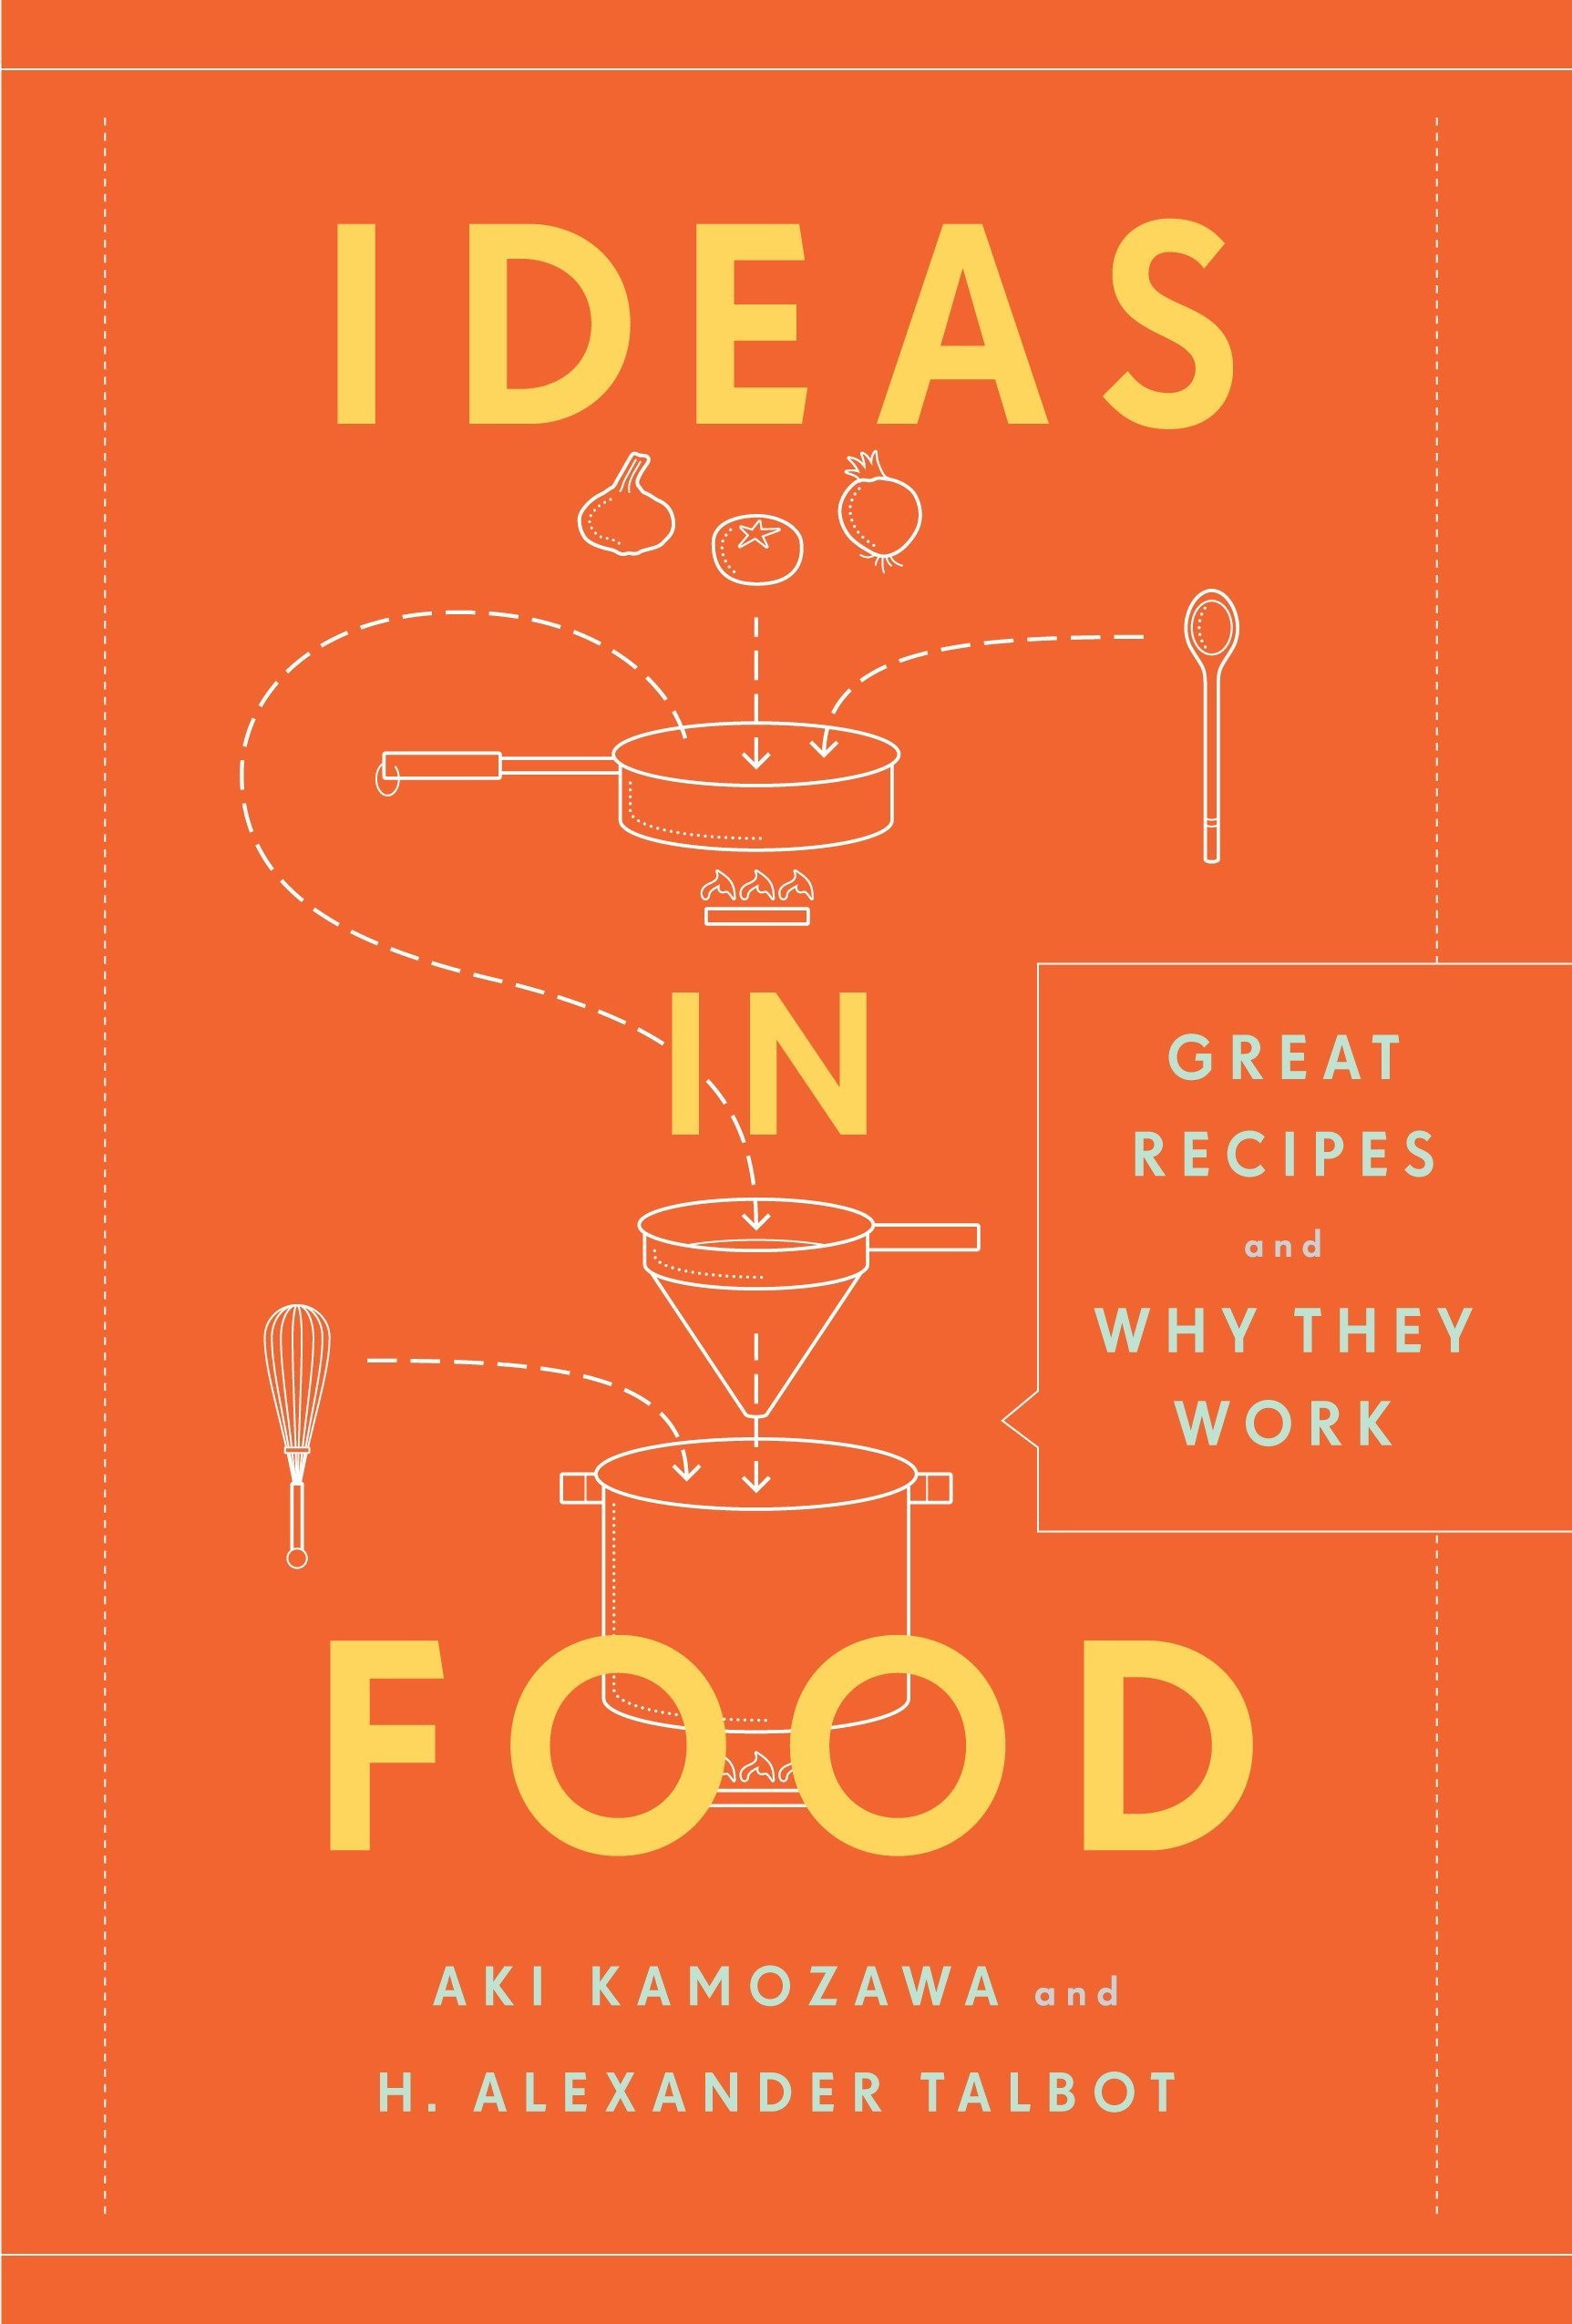 Read Online Ideas in Food: Great Recipes and Why They Work PDF